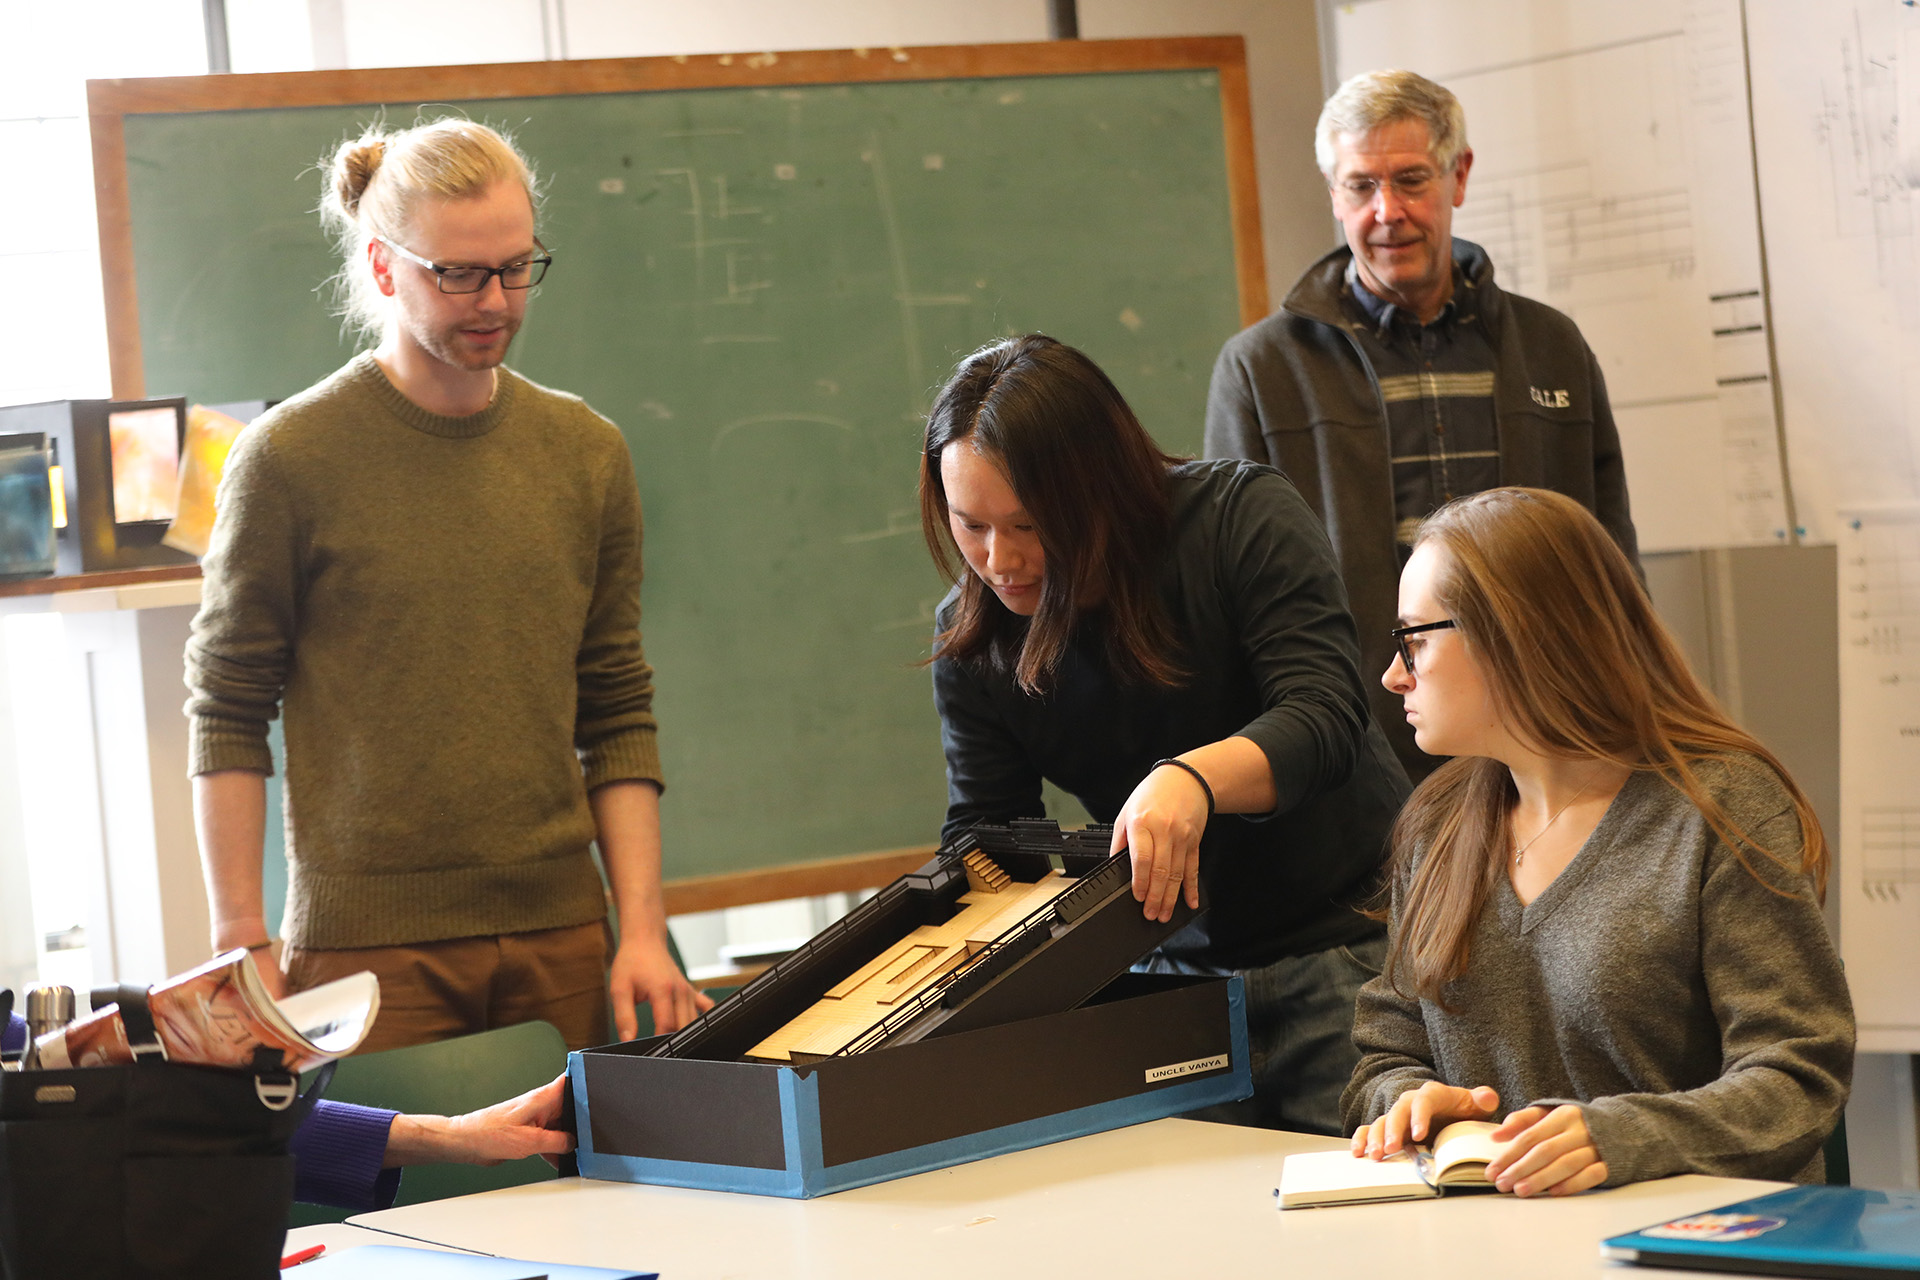 Nic Vincent ('19), Samuel Kwan Chi Chan ('19), and Riva Fairhall ('21) in design class with Stephen Strawbridge (Co-Chair), Yale School of Drama, 2018. Photo by Joan Marcus.